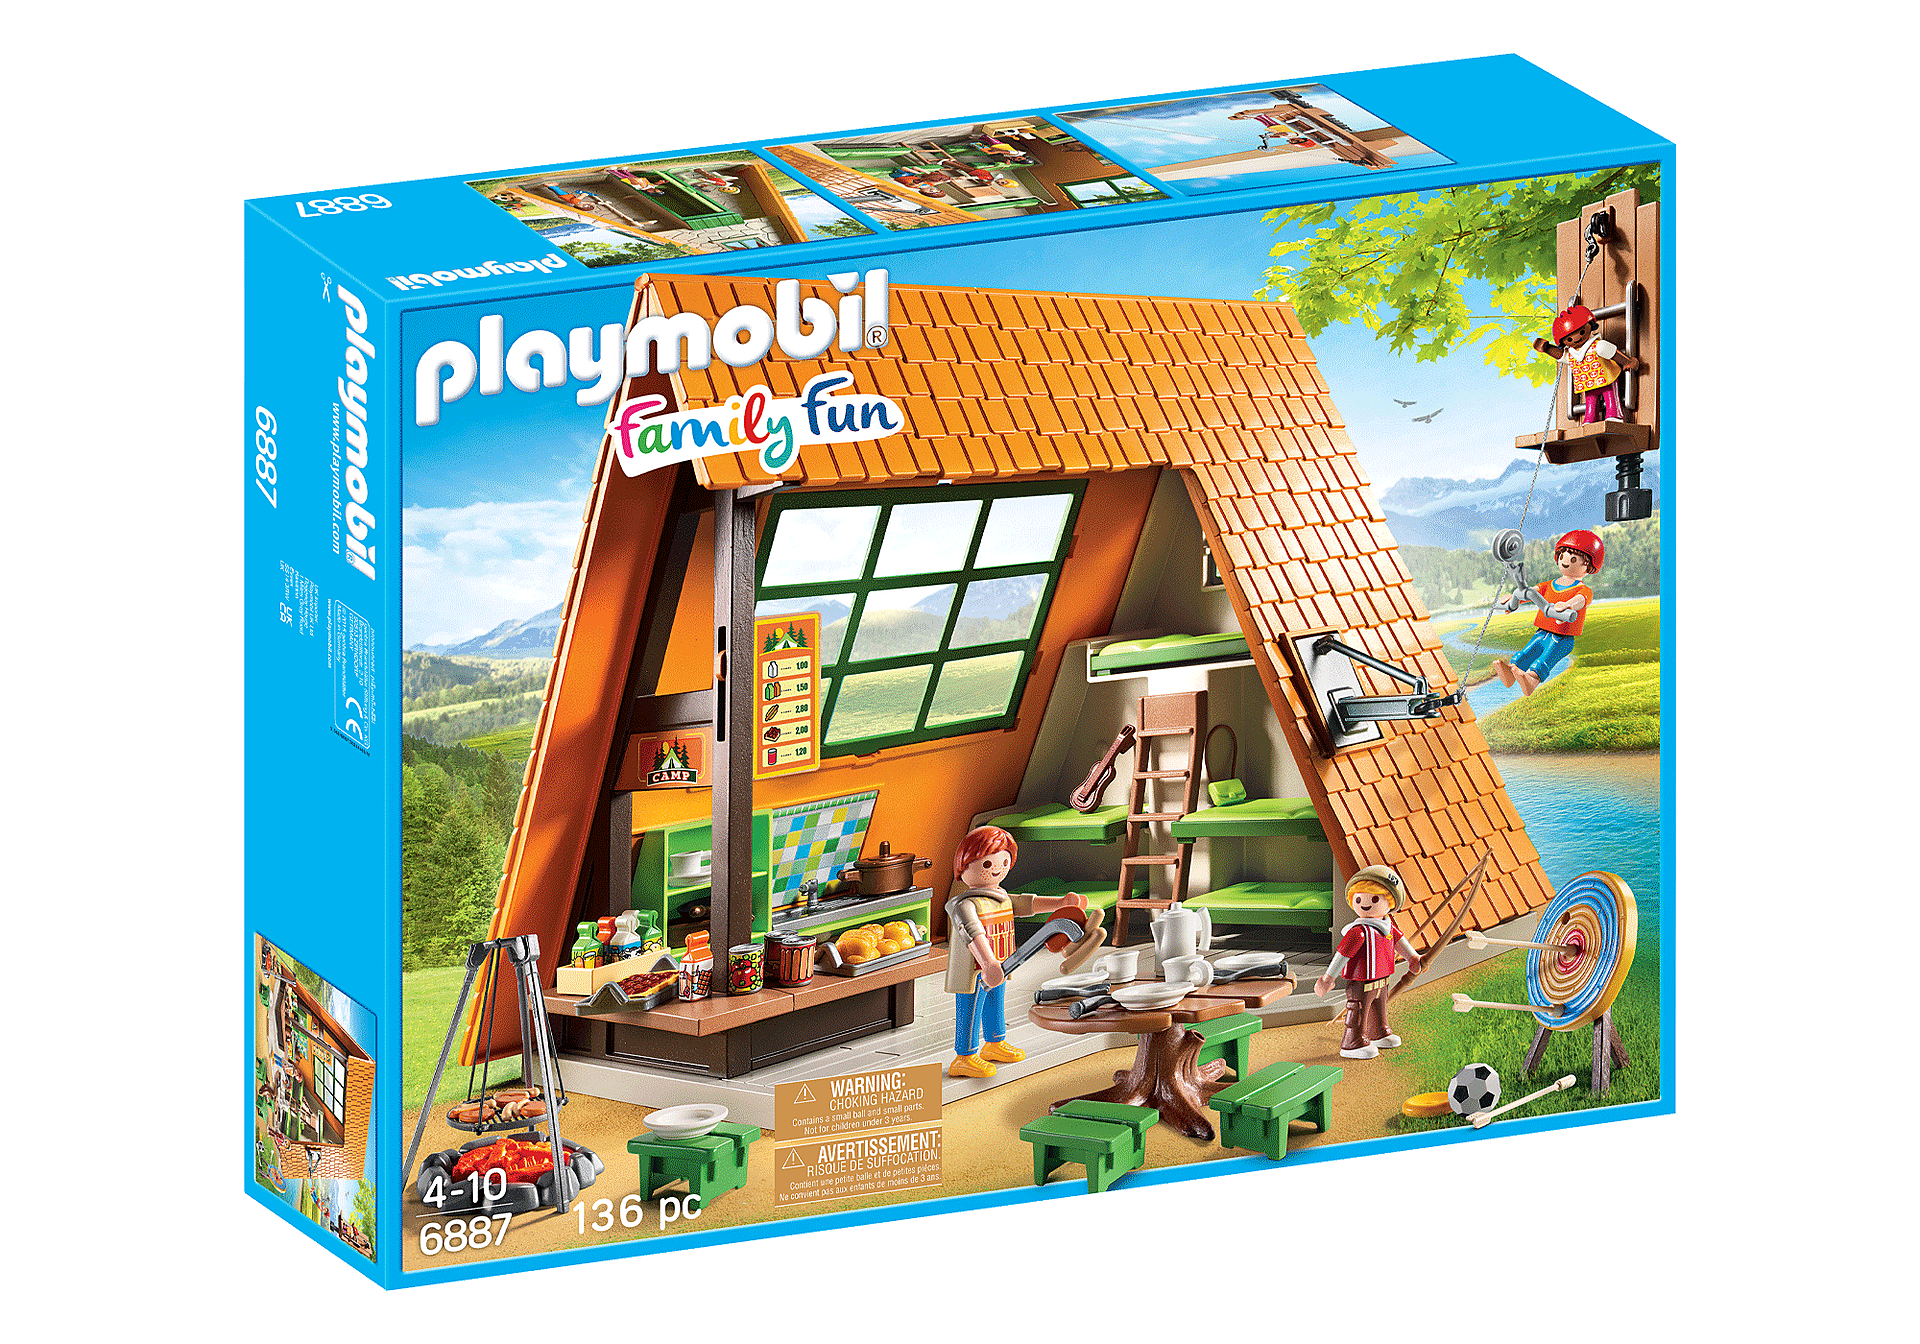 http://media.playmobil.com/i/playmobil/6887_product_box_front/Großes Feriencamp